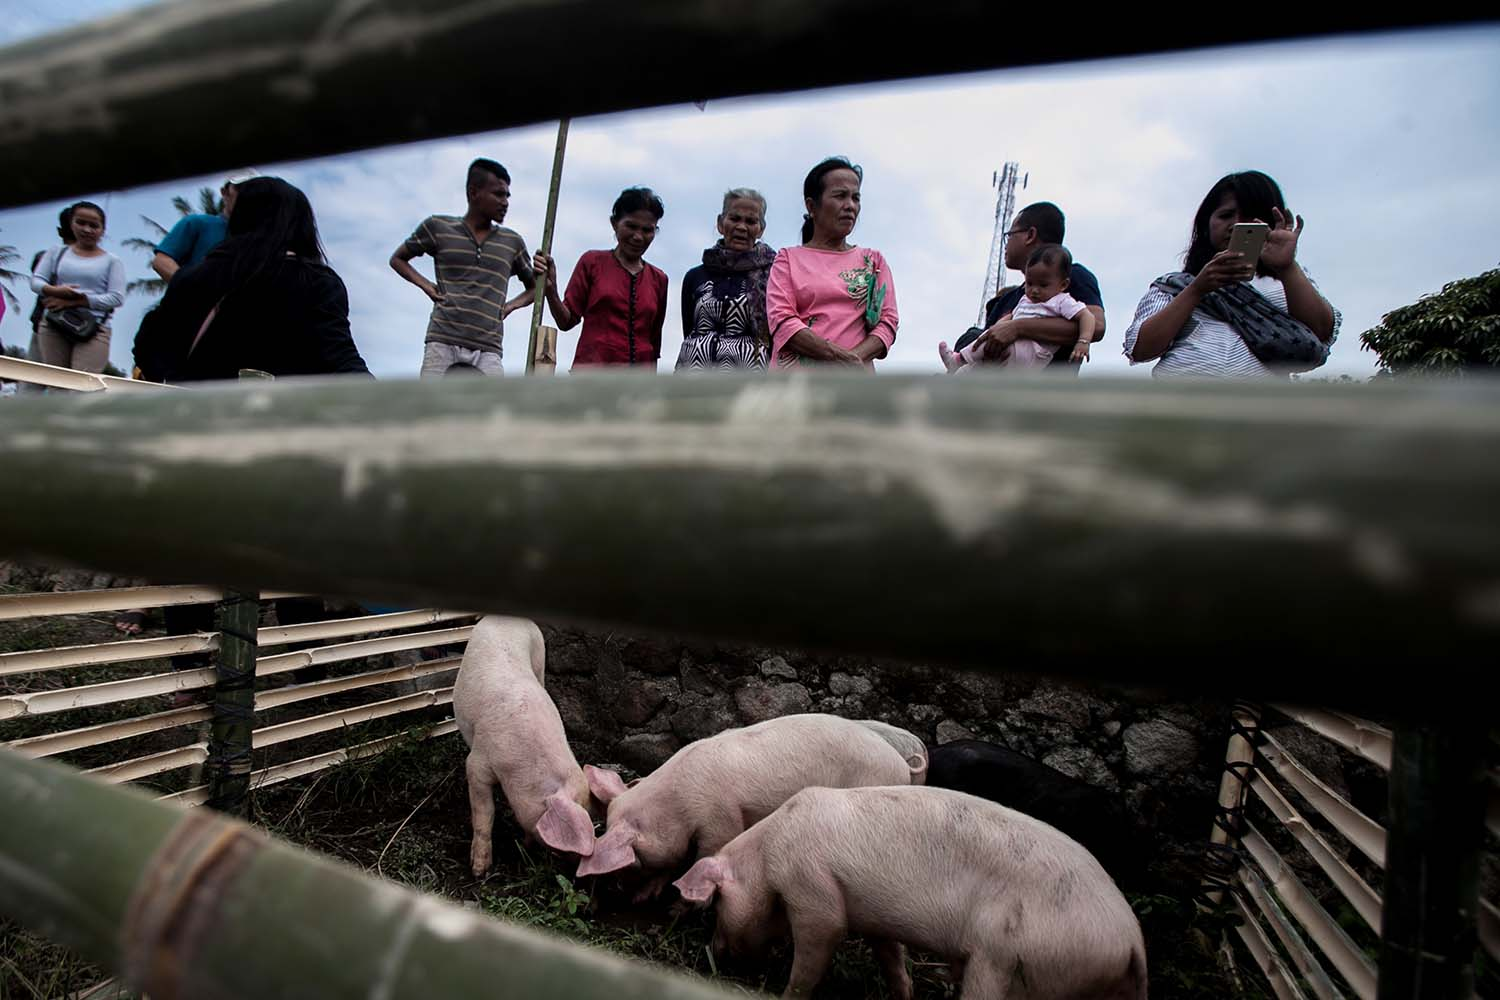 A sense of community: Visitors look at pigs in their makeshift cage in Muara district, North Tapanuli, North Sumatra, on Oct. 25. JP/Andri Ginting